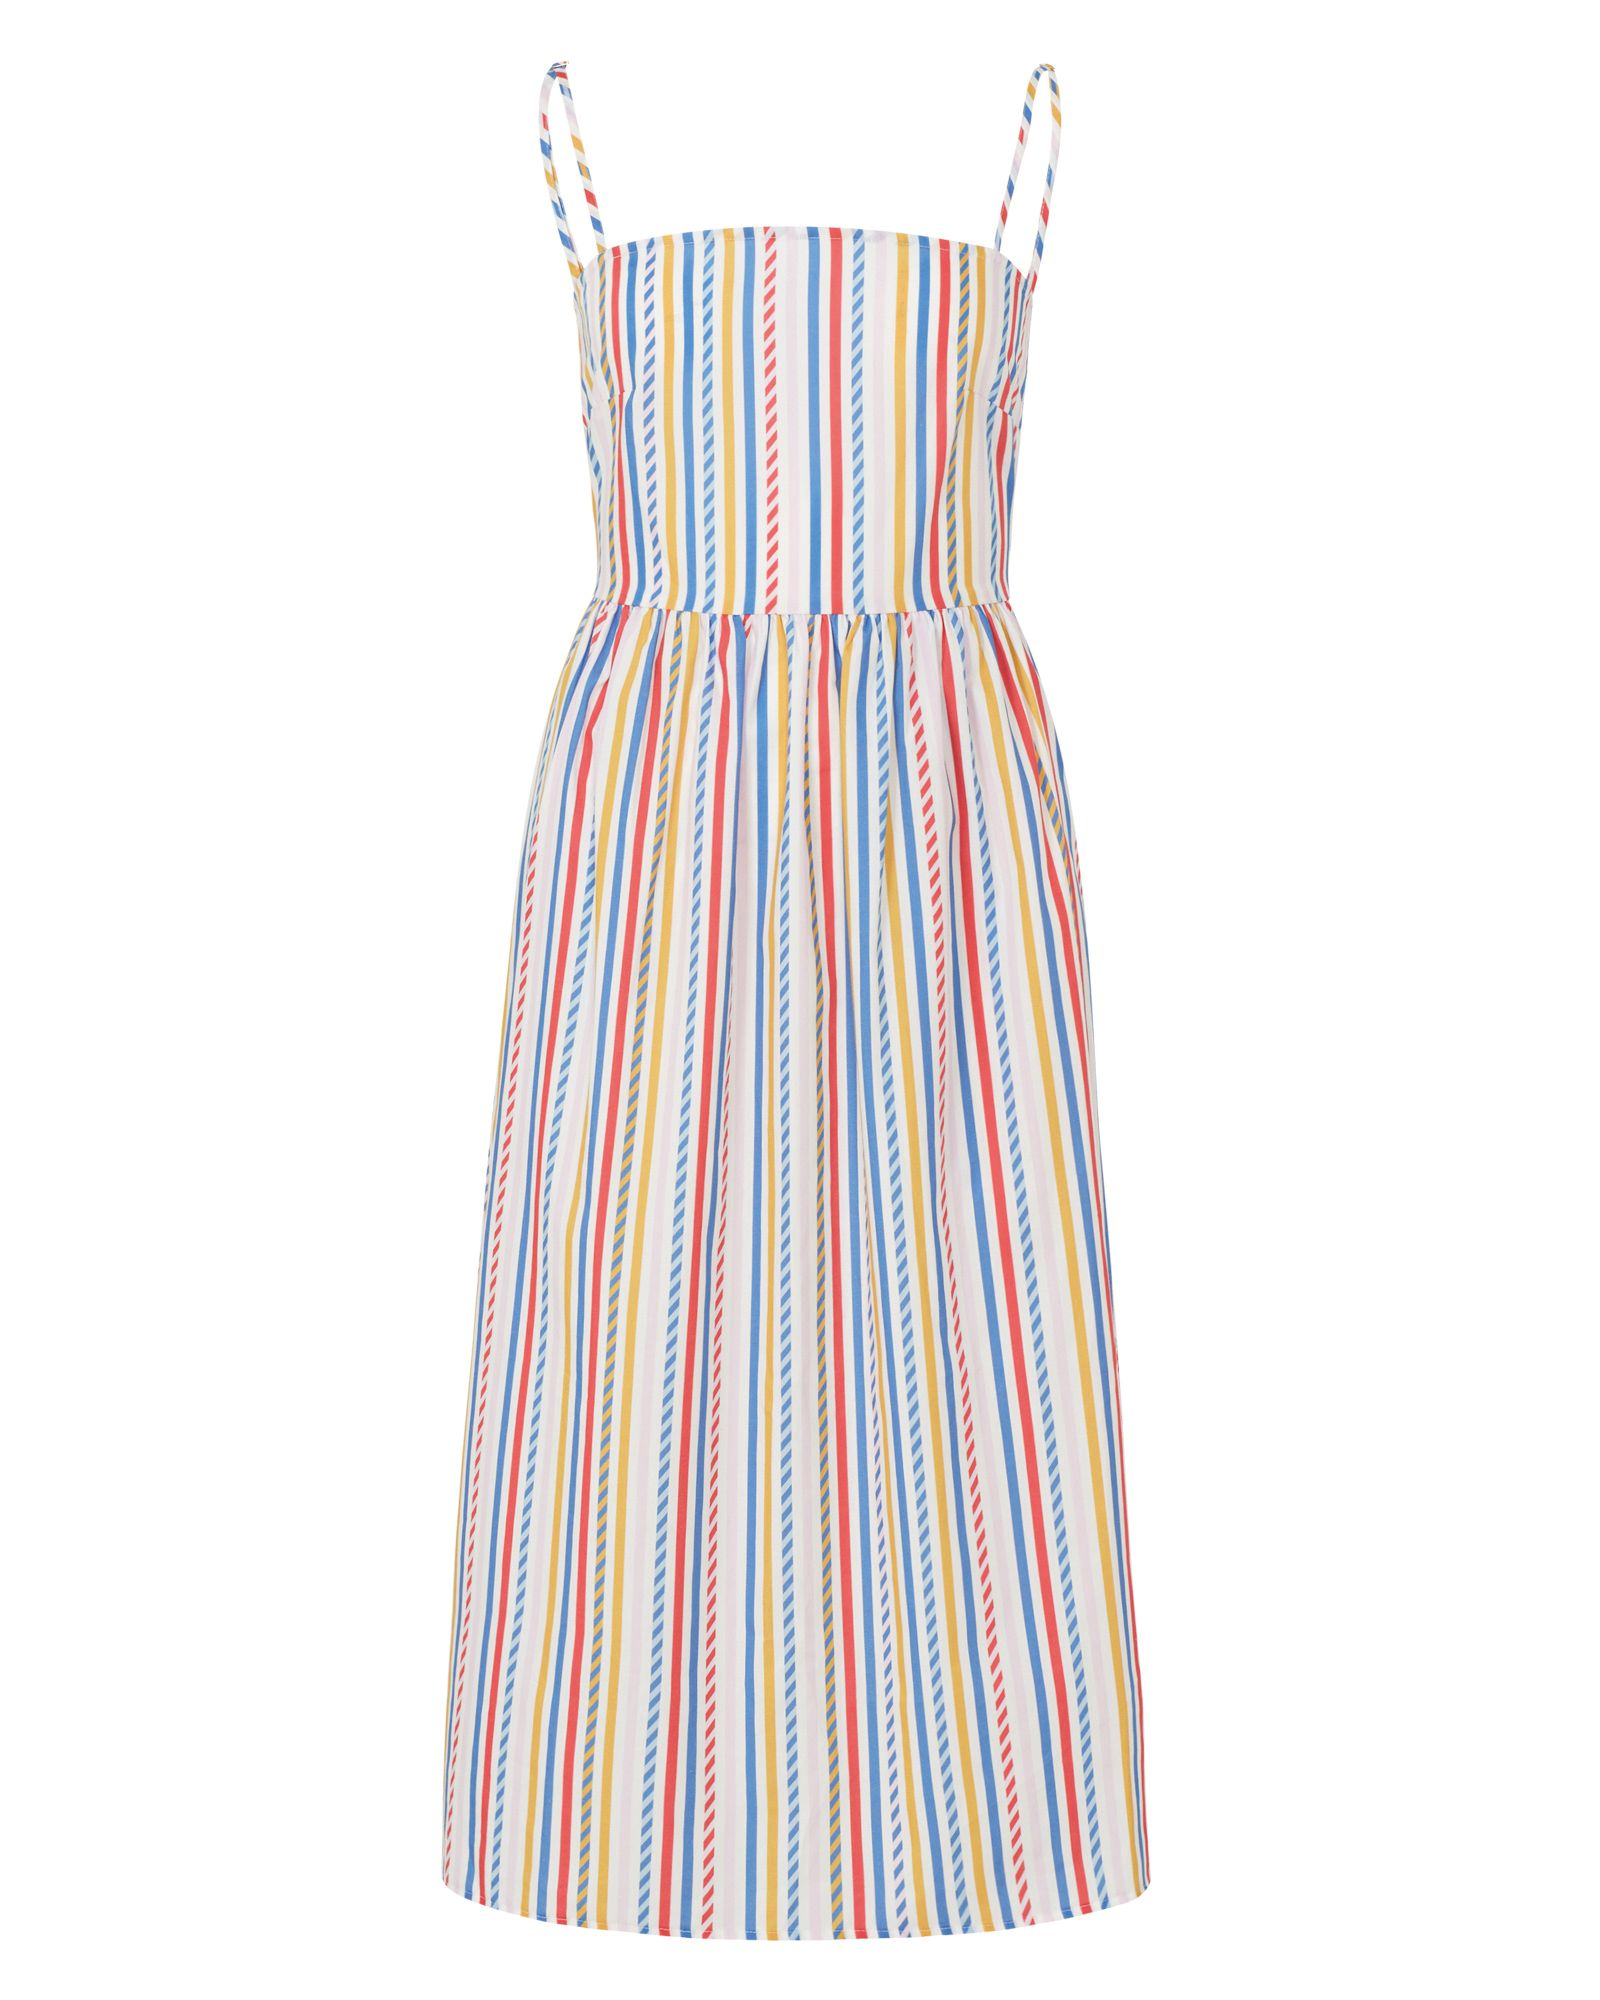 Sugarhill Boutique Candy Stripe Sundress, Multi-Coloured